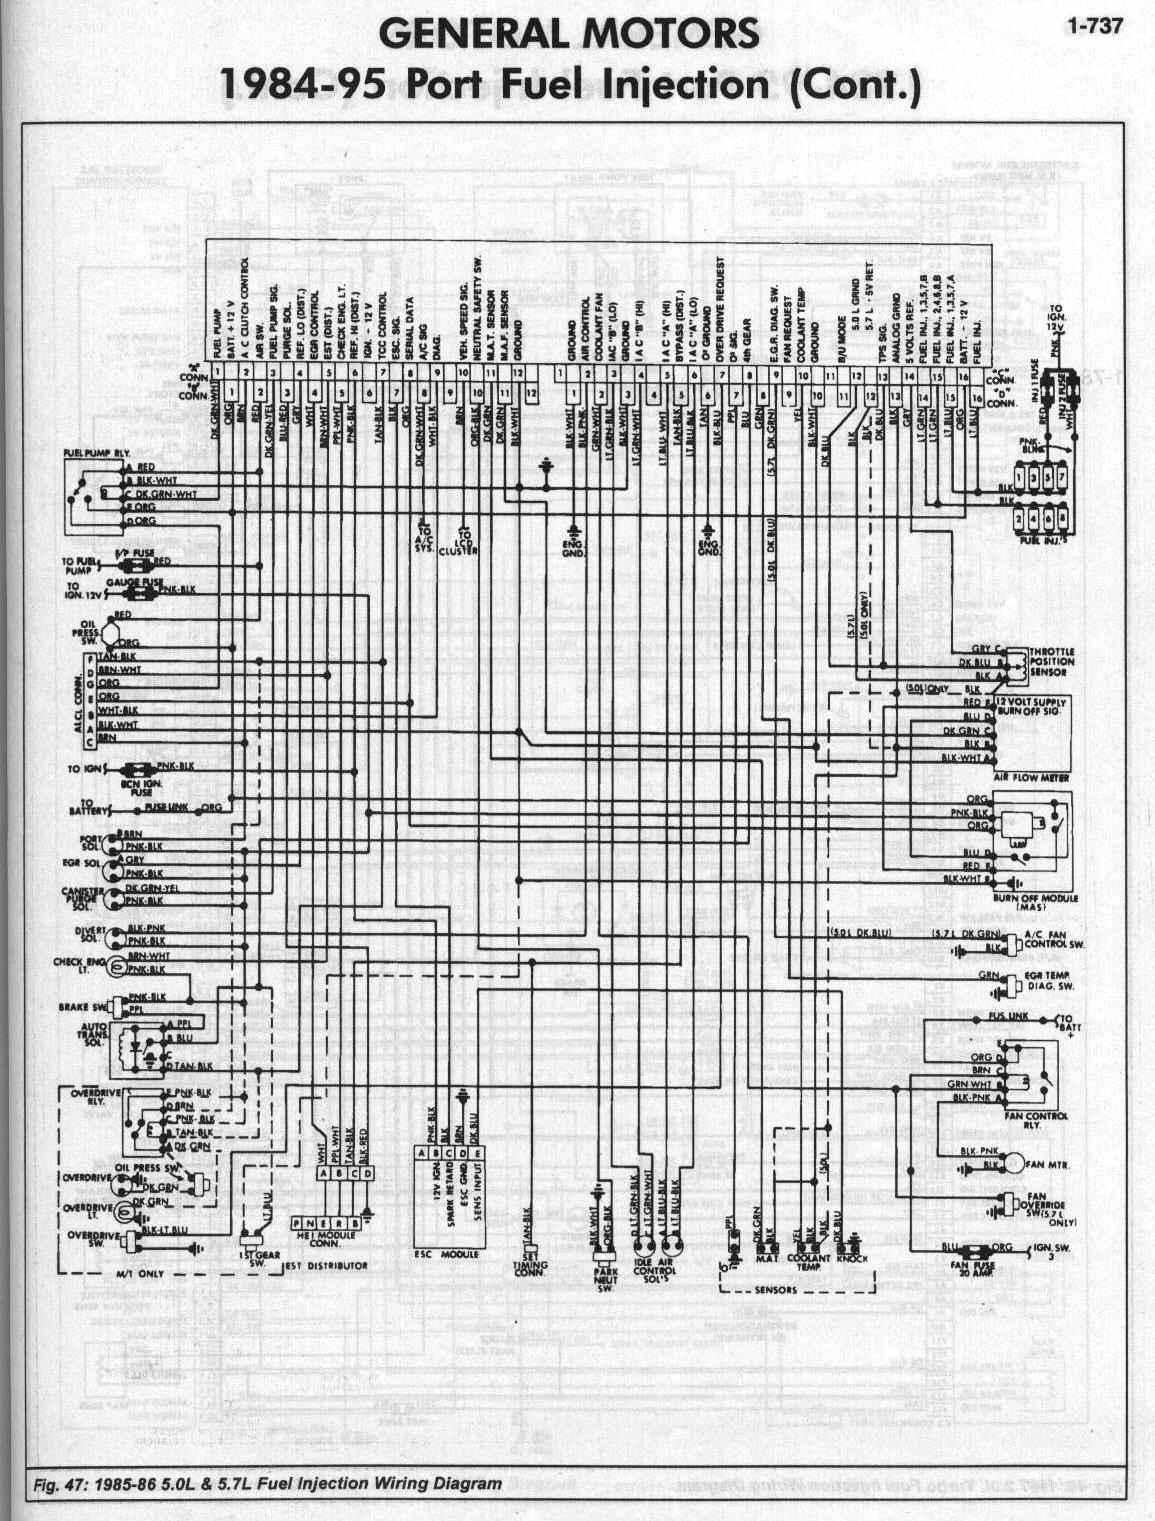 85-870v8MAF  Camaro Electrical Wiring Diagram on 86 camaro radiator, 86 camaro wheels, 86 camaro relay, 86 camaro fuel tank, 86 camaro neutral safety switch, 86 camaro exhaust, 86 iroc camaro wire diagram, 86 camaro engine, 86 camaro body, 86 camaro electric diagram, 86 camaro brochure, 86 camaro alternator, 86 camaro radio wiring, 86 camaro motor, 86 camaro transmission, 86 camaro seats, 86 camaro headlights, 86 camaro parts, 86 camaro fuse diagram, 86 camaro drive shaft,